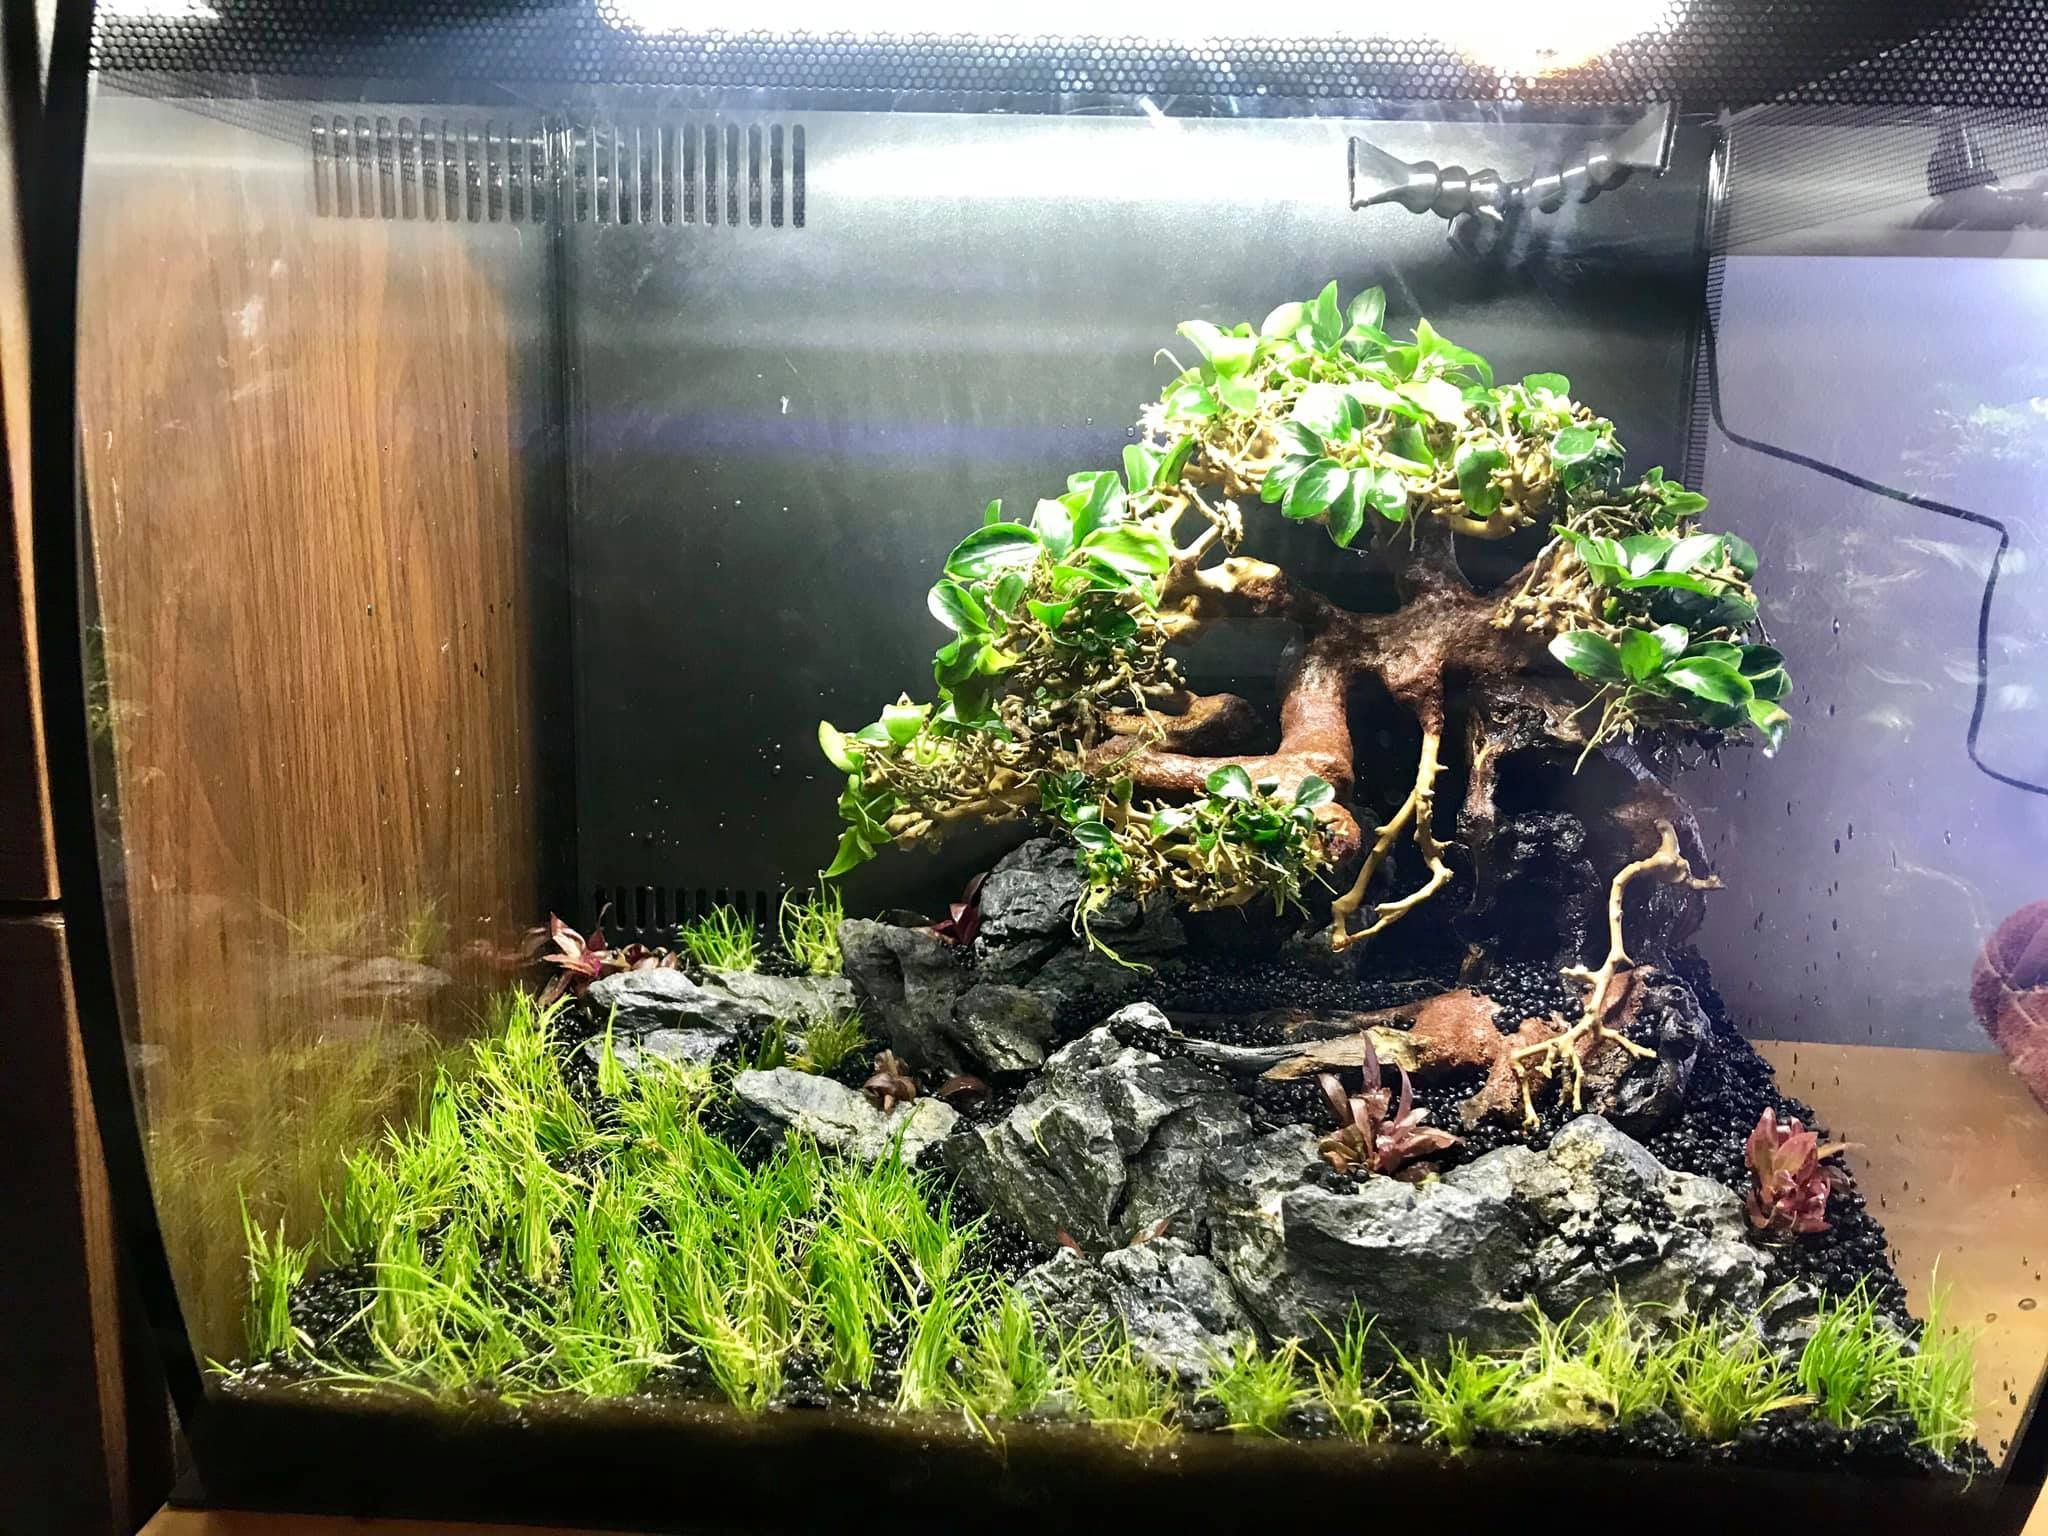 Pin by Natalie Bauld on Fish tanks   Aquascape